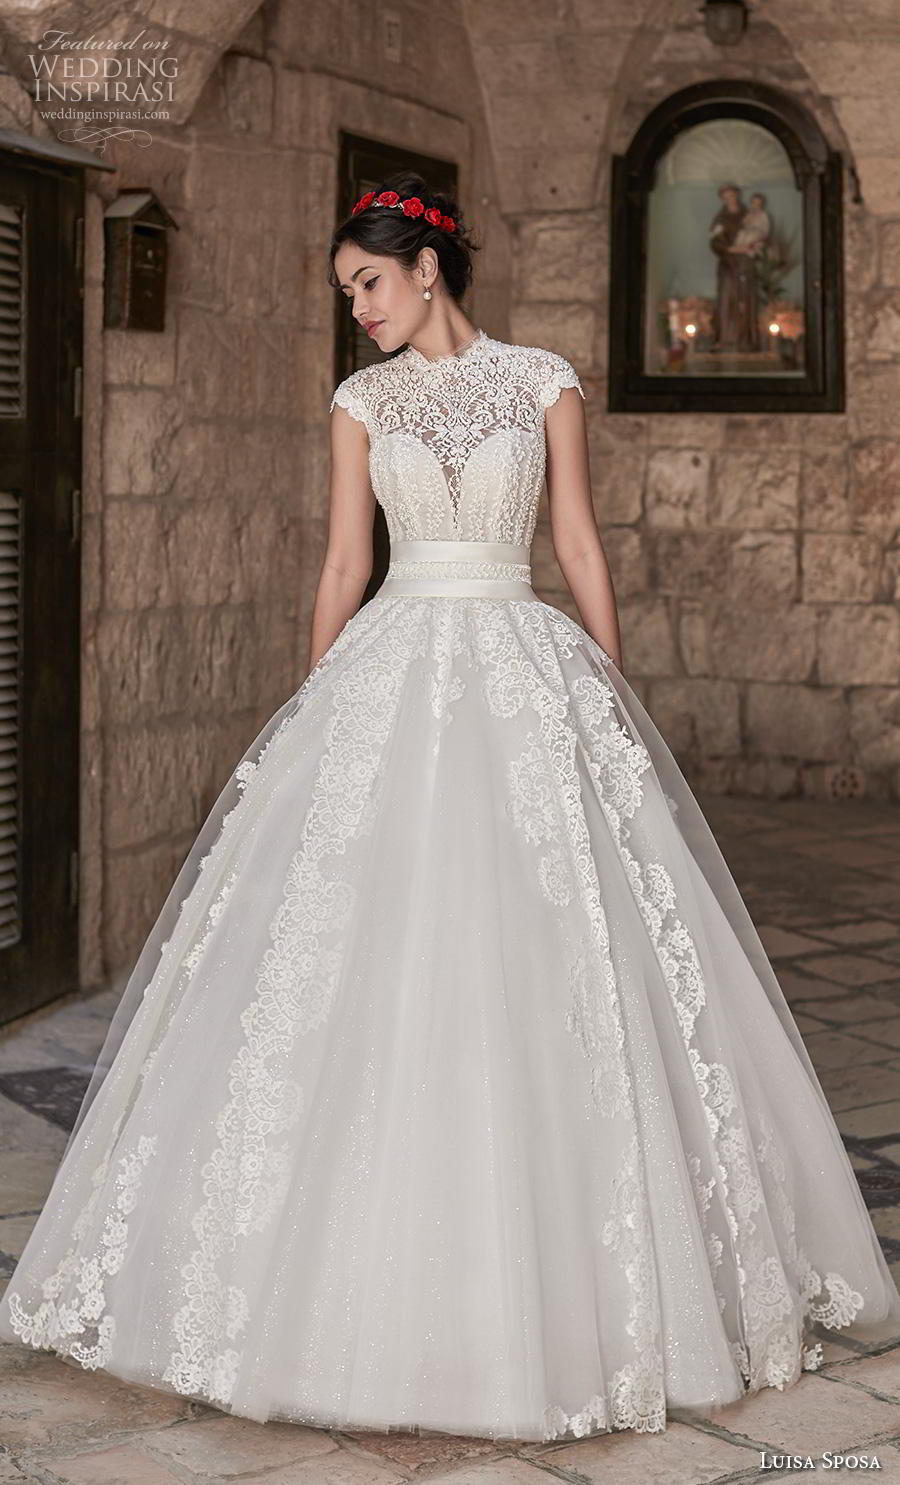 luisa sposa 2020 bridal cap sleeves illusion high neck sweetheart neck heavily embellished bodice princess ball gown a  line wedding dress (3) mv